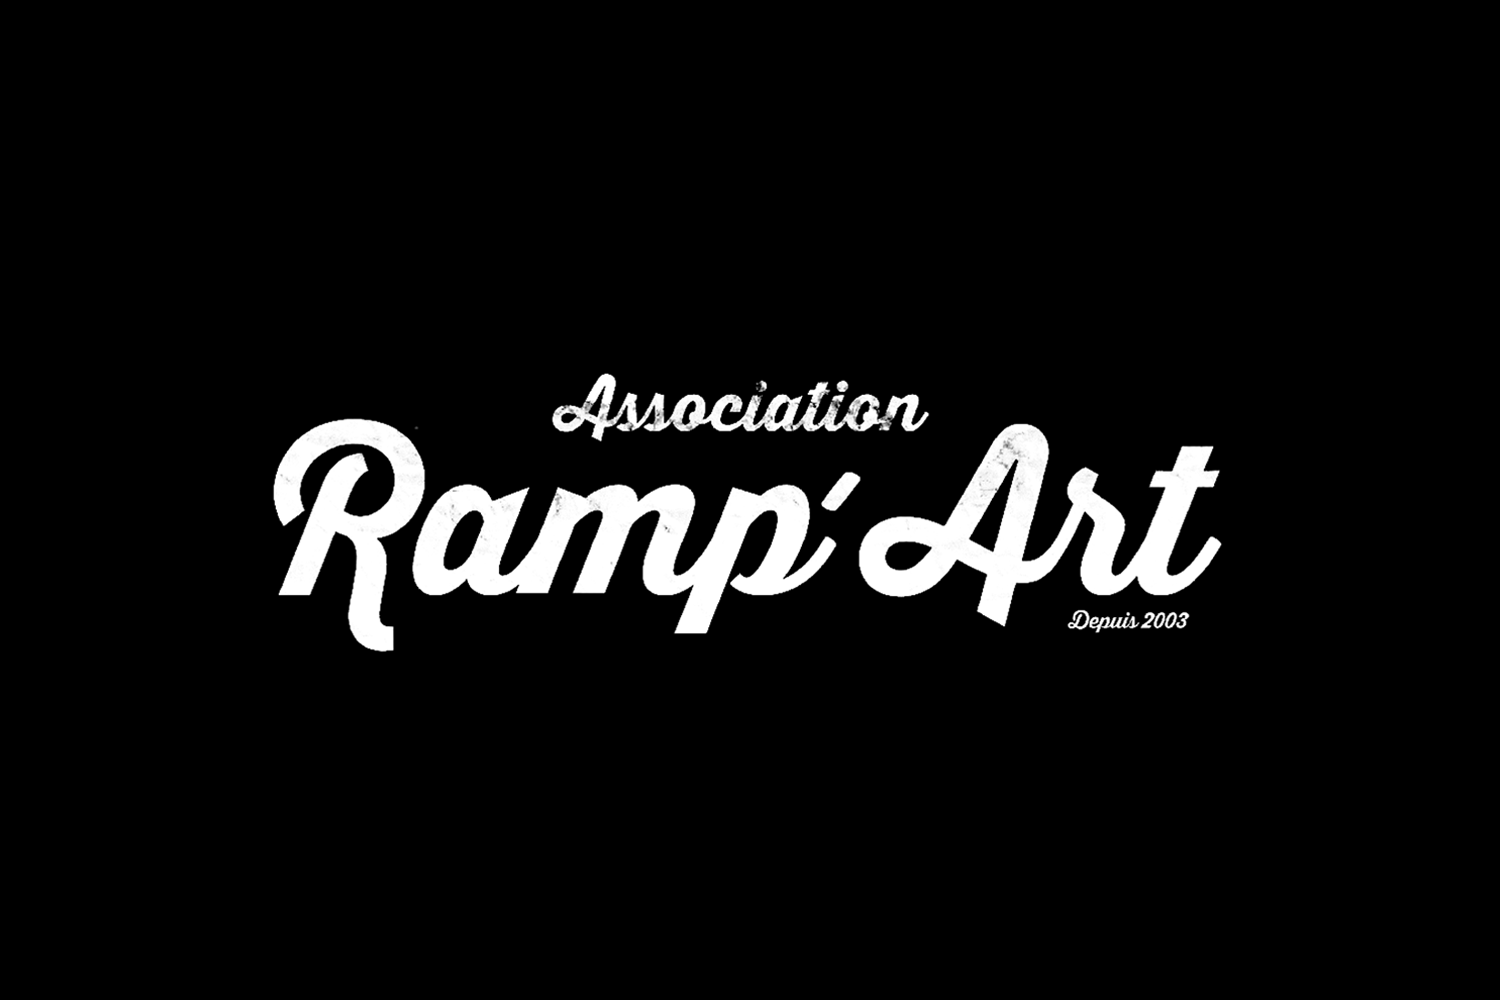 Association Ramp'Art